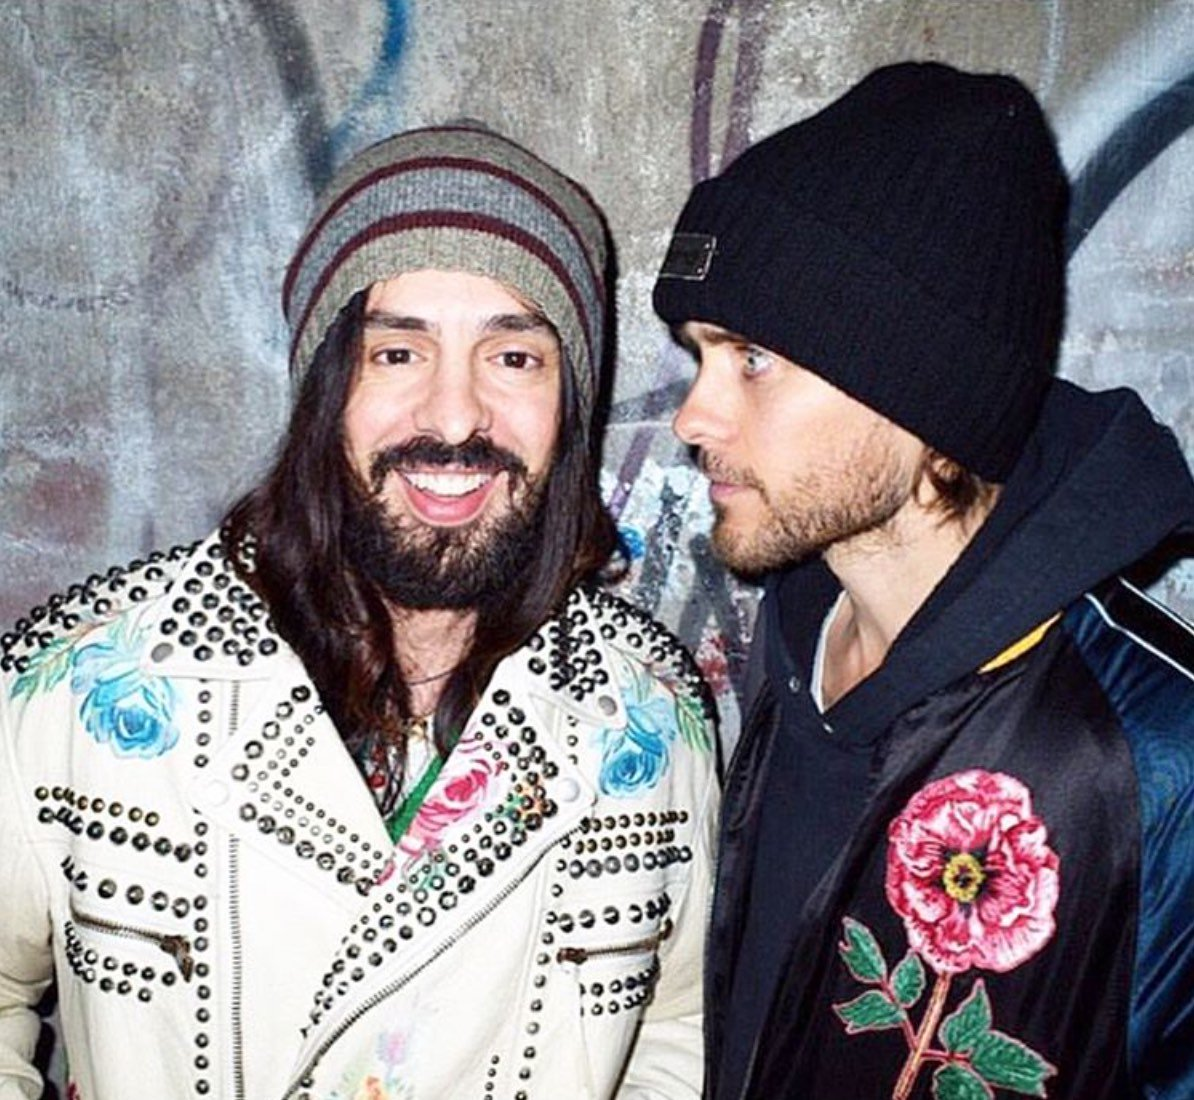 Alessandro Michele pours his heart into every single thing he does: https://t.co/WfB6Mu7e4p #TIME100 @TIME https://t.co/SVml5odzug